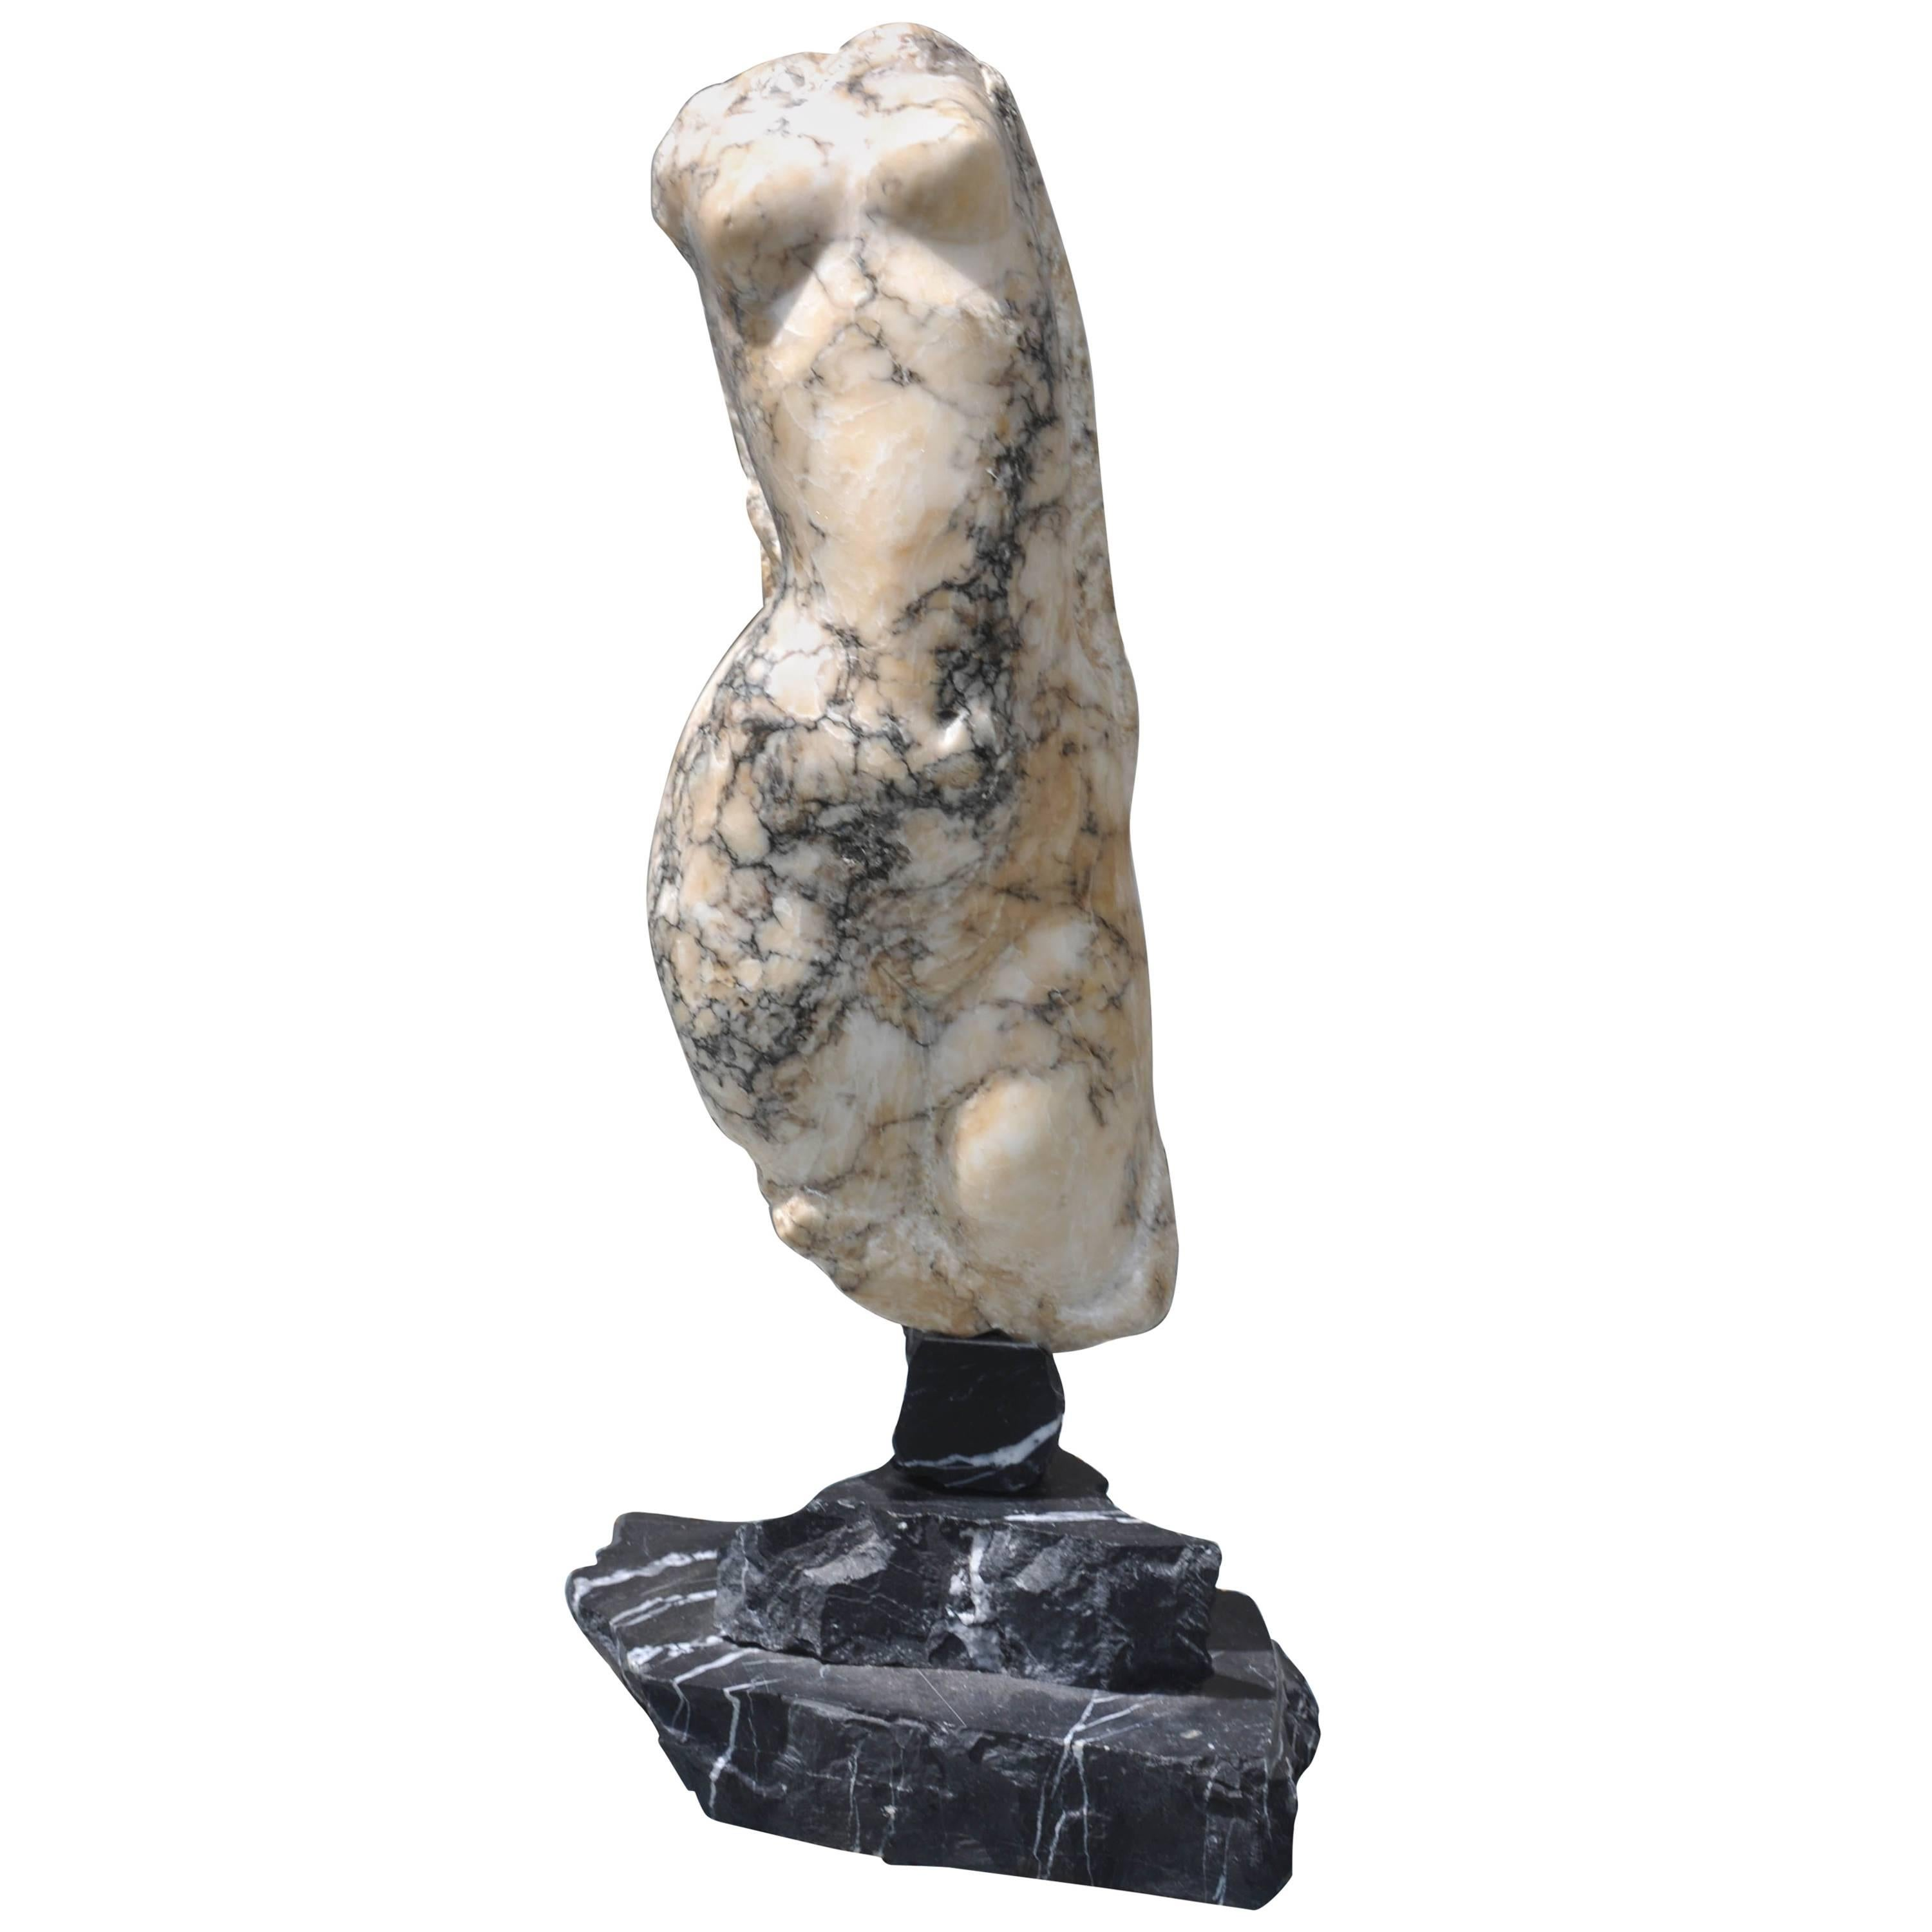 Abstract Marble Female Torso Sculpture, Italy, 1900